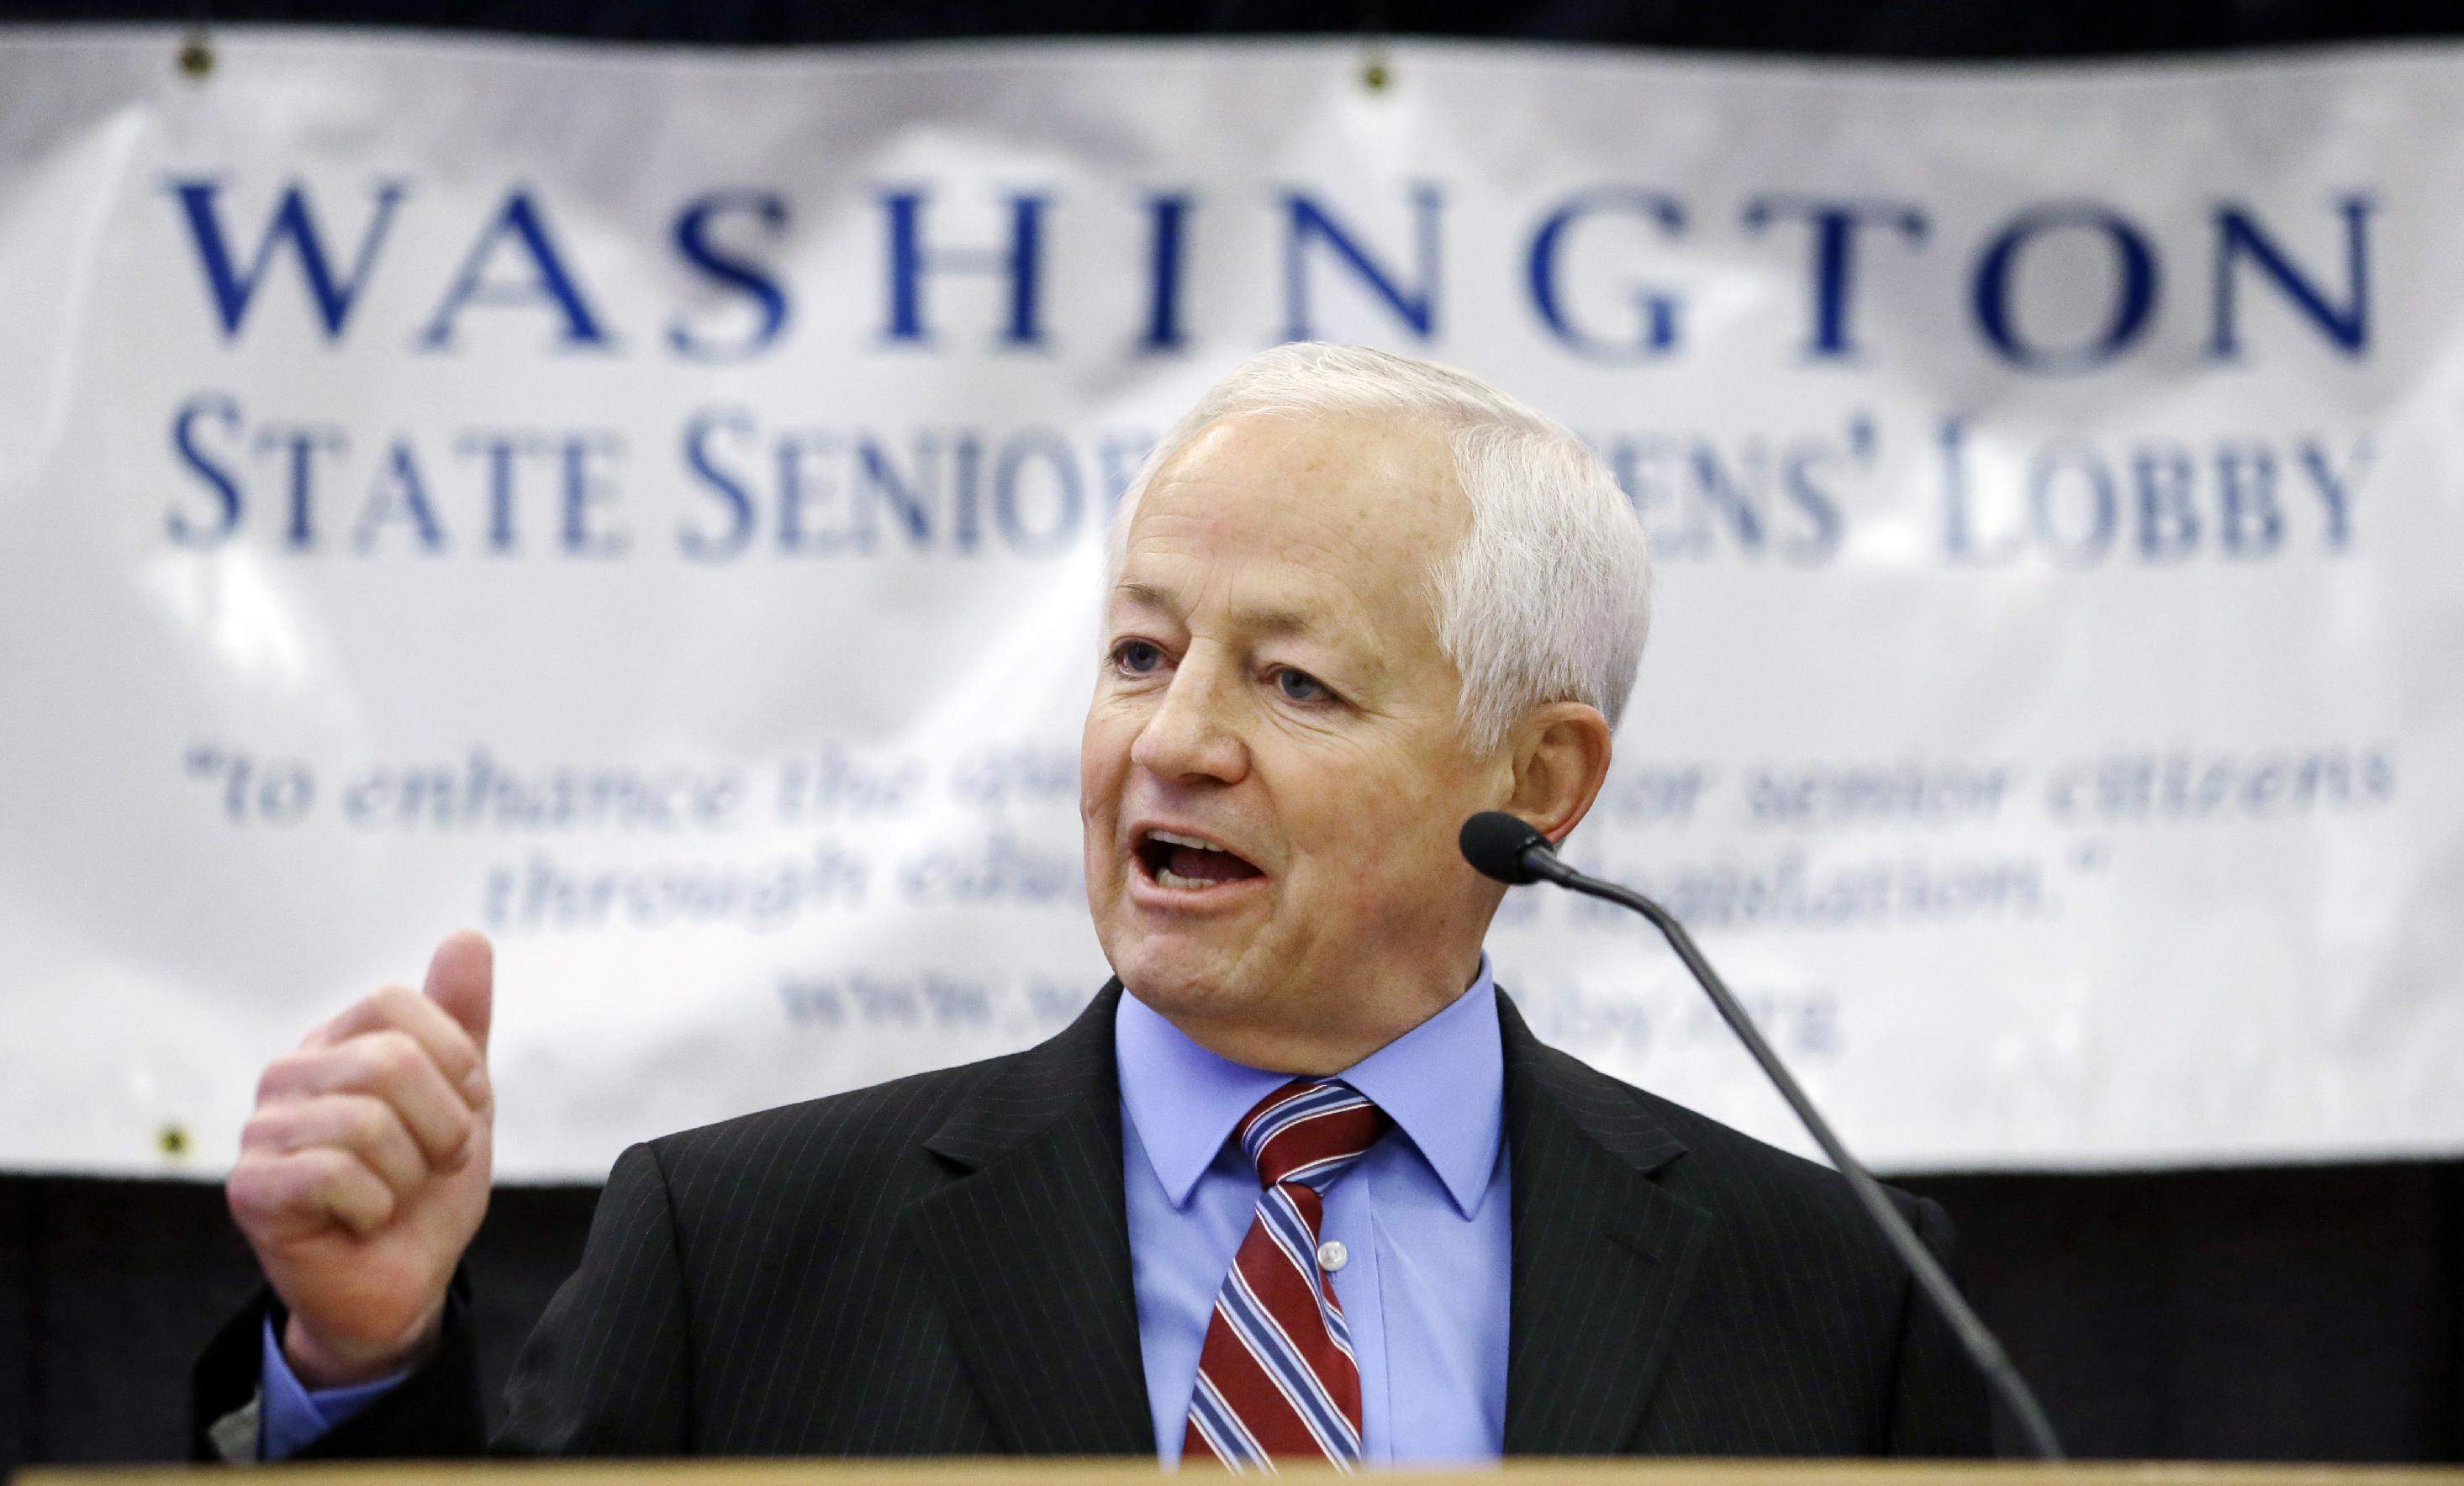 This photo taken Feb. 20, 2014 showsWashington state Insurance Commissioner Mike Kreidler speaking to seniors at an annual lobby day for the group in Olympia, Wash. Cancer patients relieved that they can get insurance coverage because of the new health care law may be disappointed to learn that some of the nation's best cancer hospitals are off limits. Only four of 19 nationally recognized comprehensive cancer centers that responded to an Associated Press survey said patients have access through all the insurance companies in their state's exchange, or primary market. (AP Photo/Elaine Thompson)